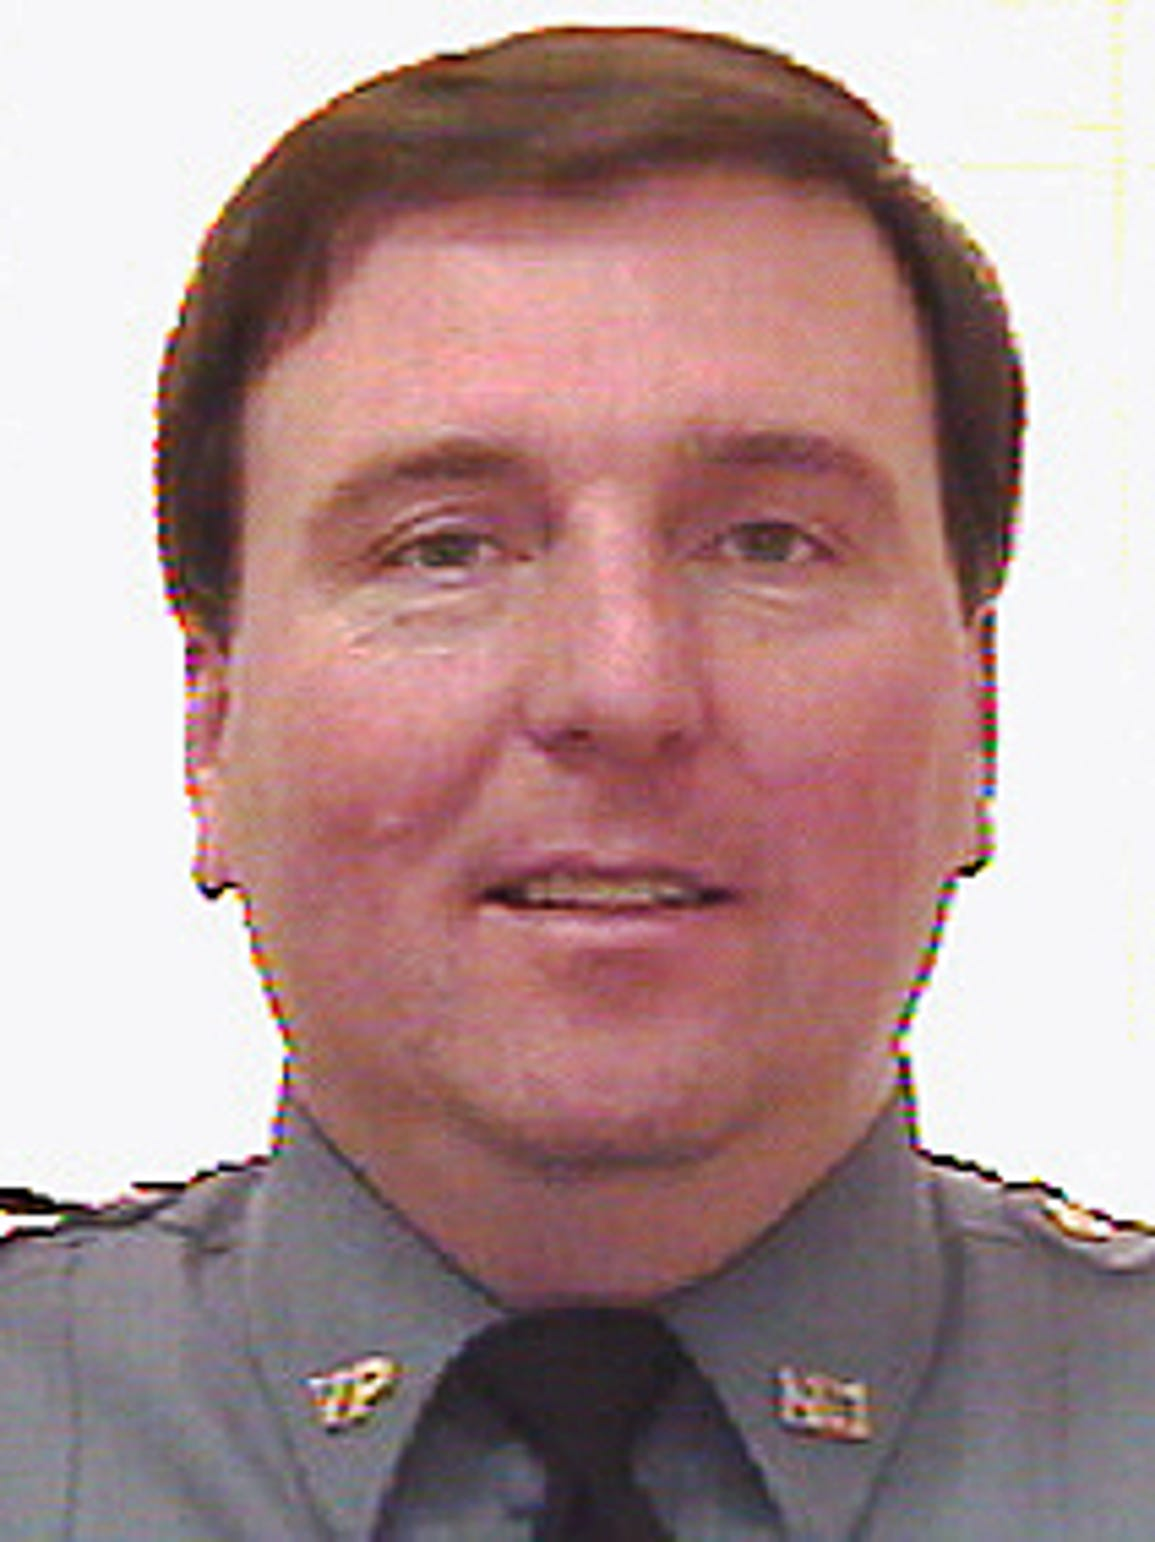 Former Voorhees Police Chief Keith Hummel was accused